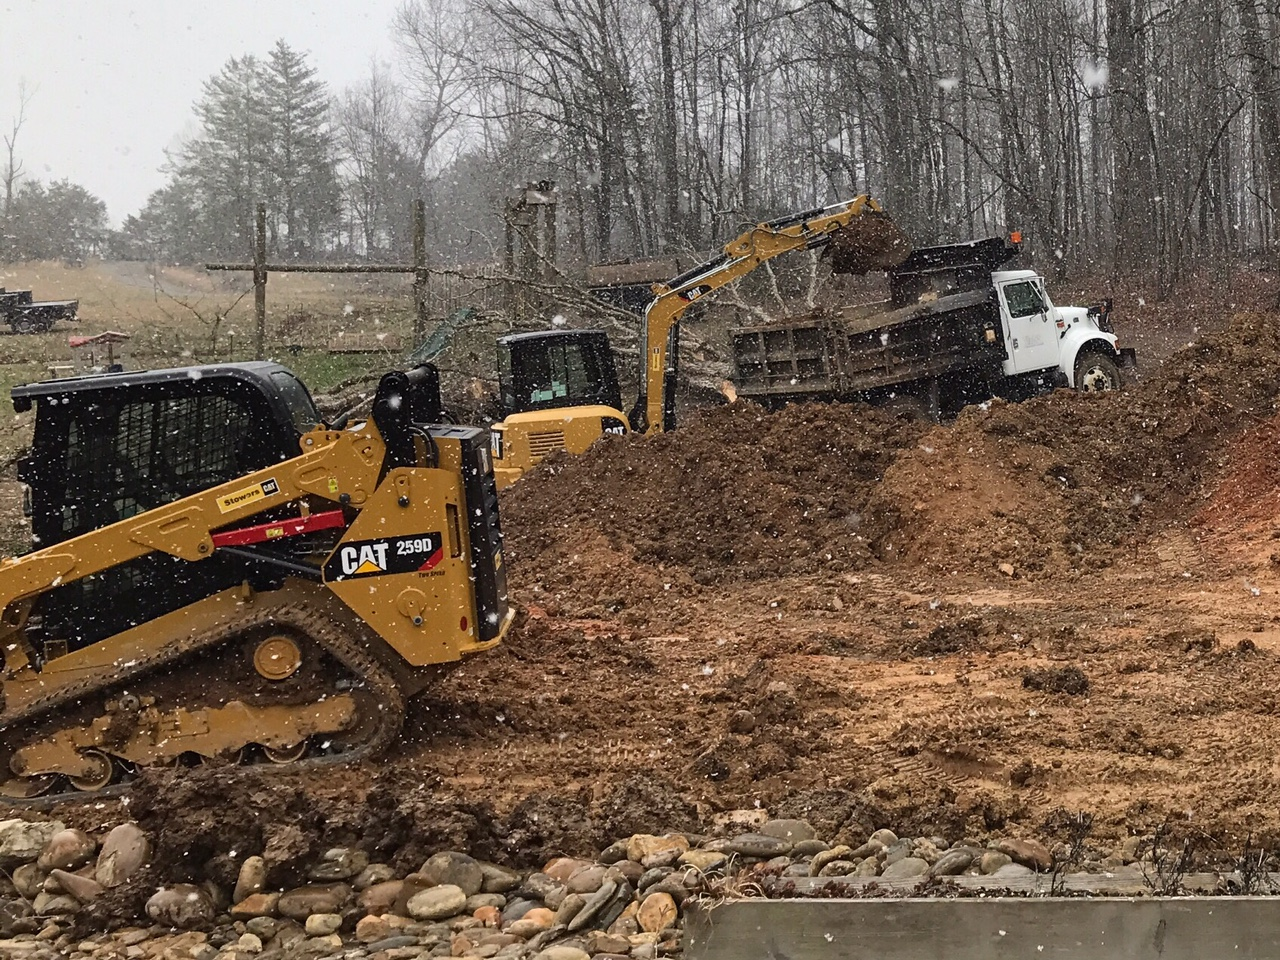 Seal it ASAP — Skidsteer and mini excavator services in Tennessee